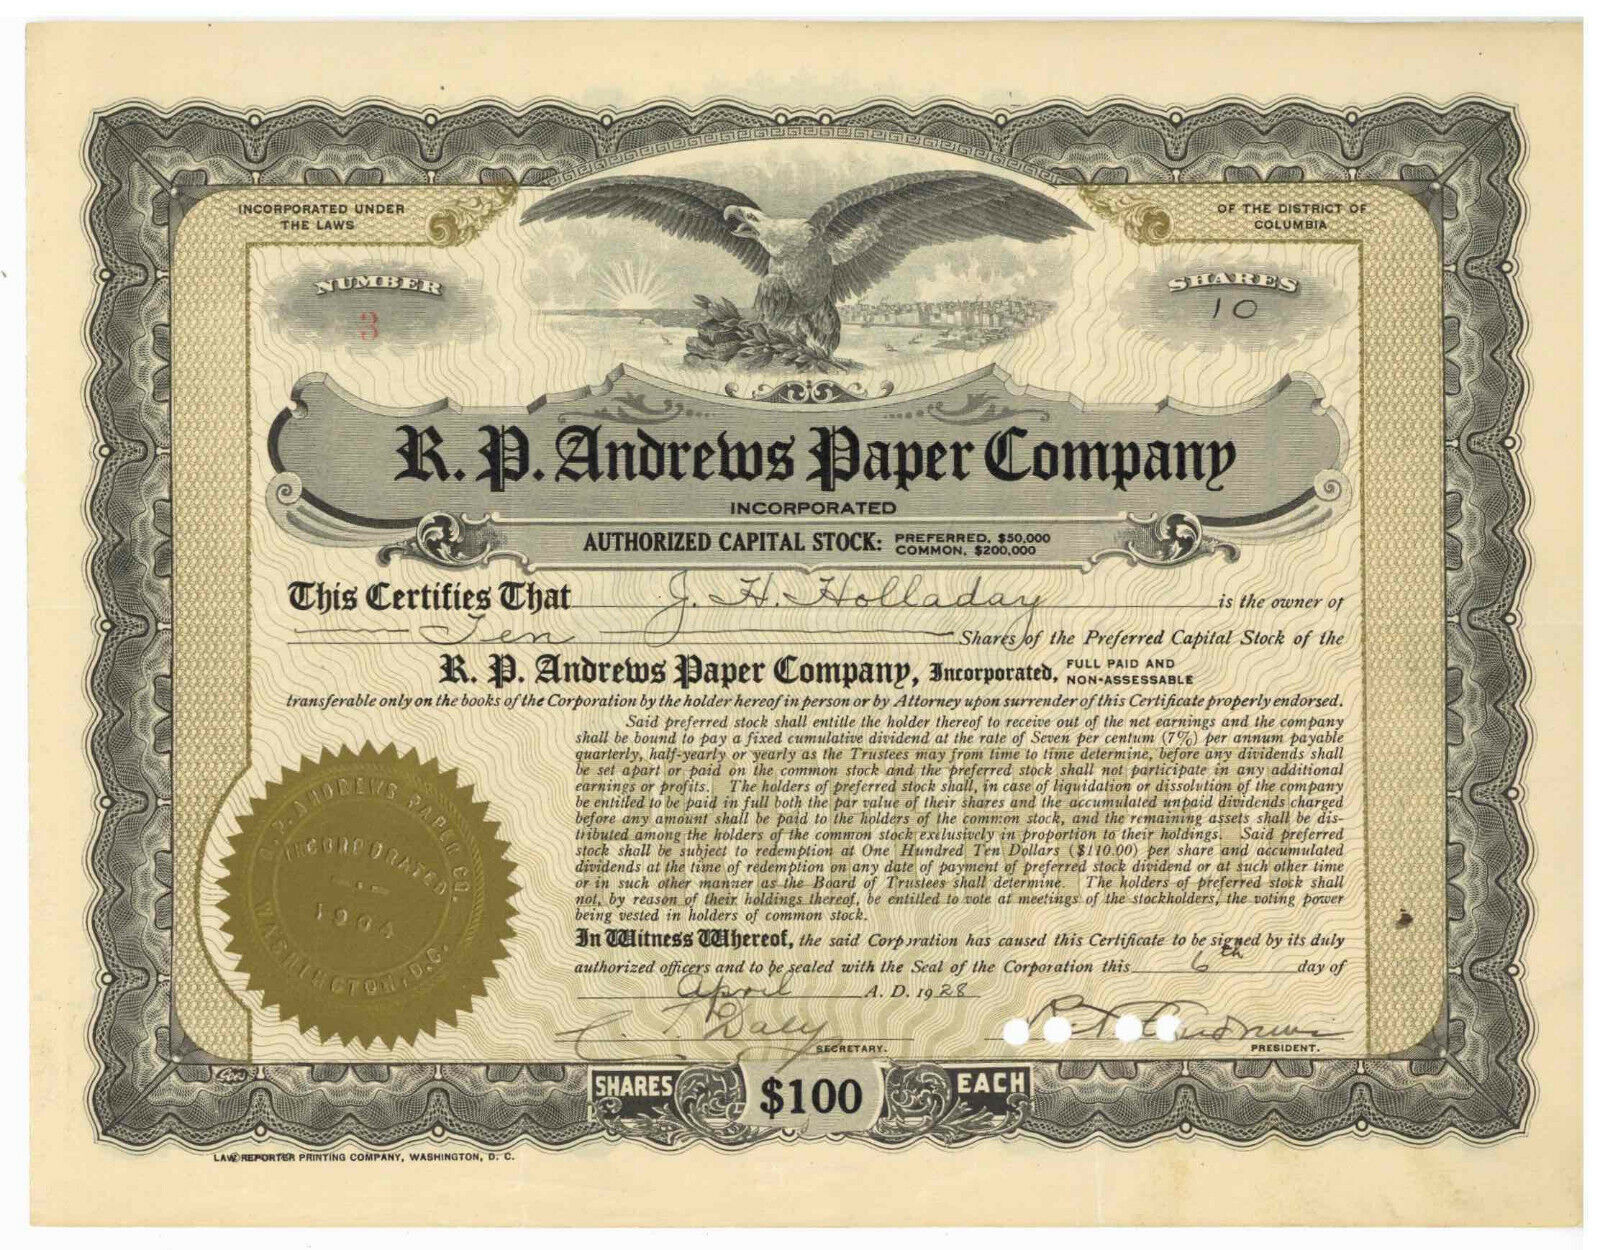 R. P. Andrews Paper Company. Stock Certificate. District of Columbia. 1928